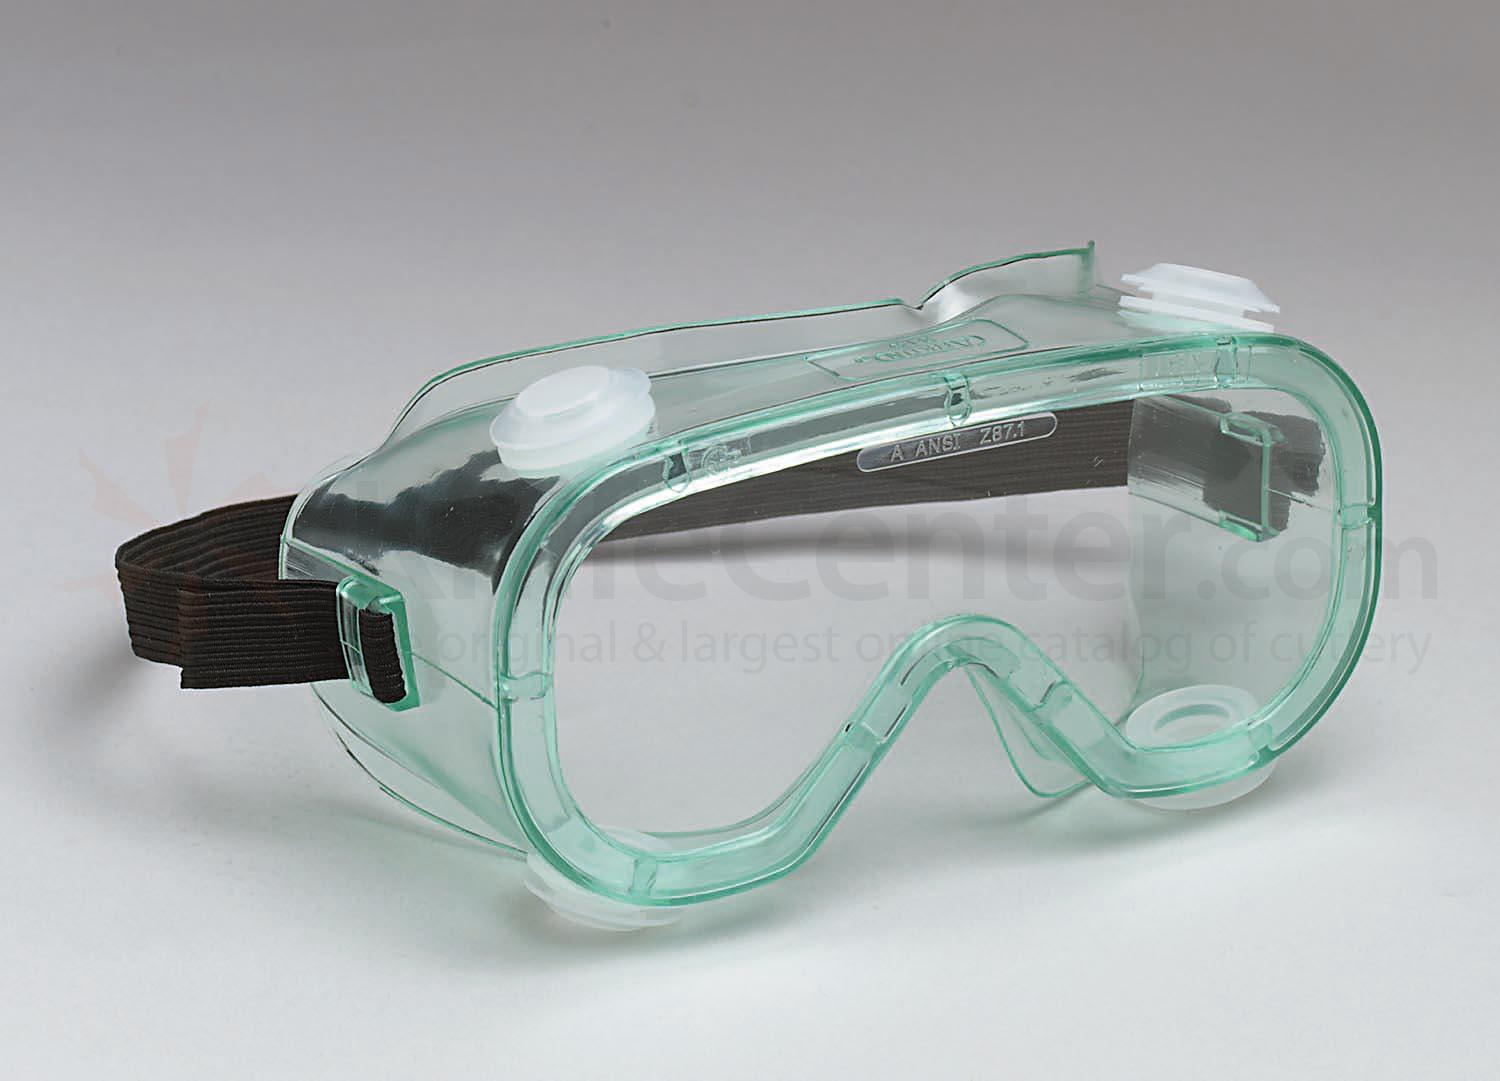 PhysiciansCare Brand BodyGear Safety Splash Goggles with Microban Product Protection